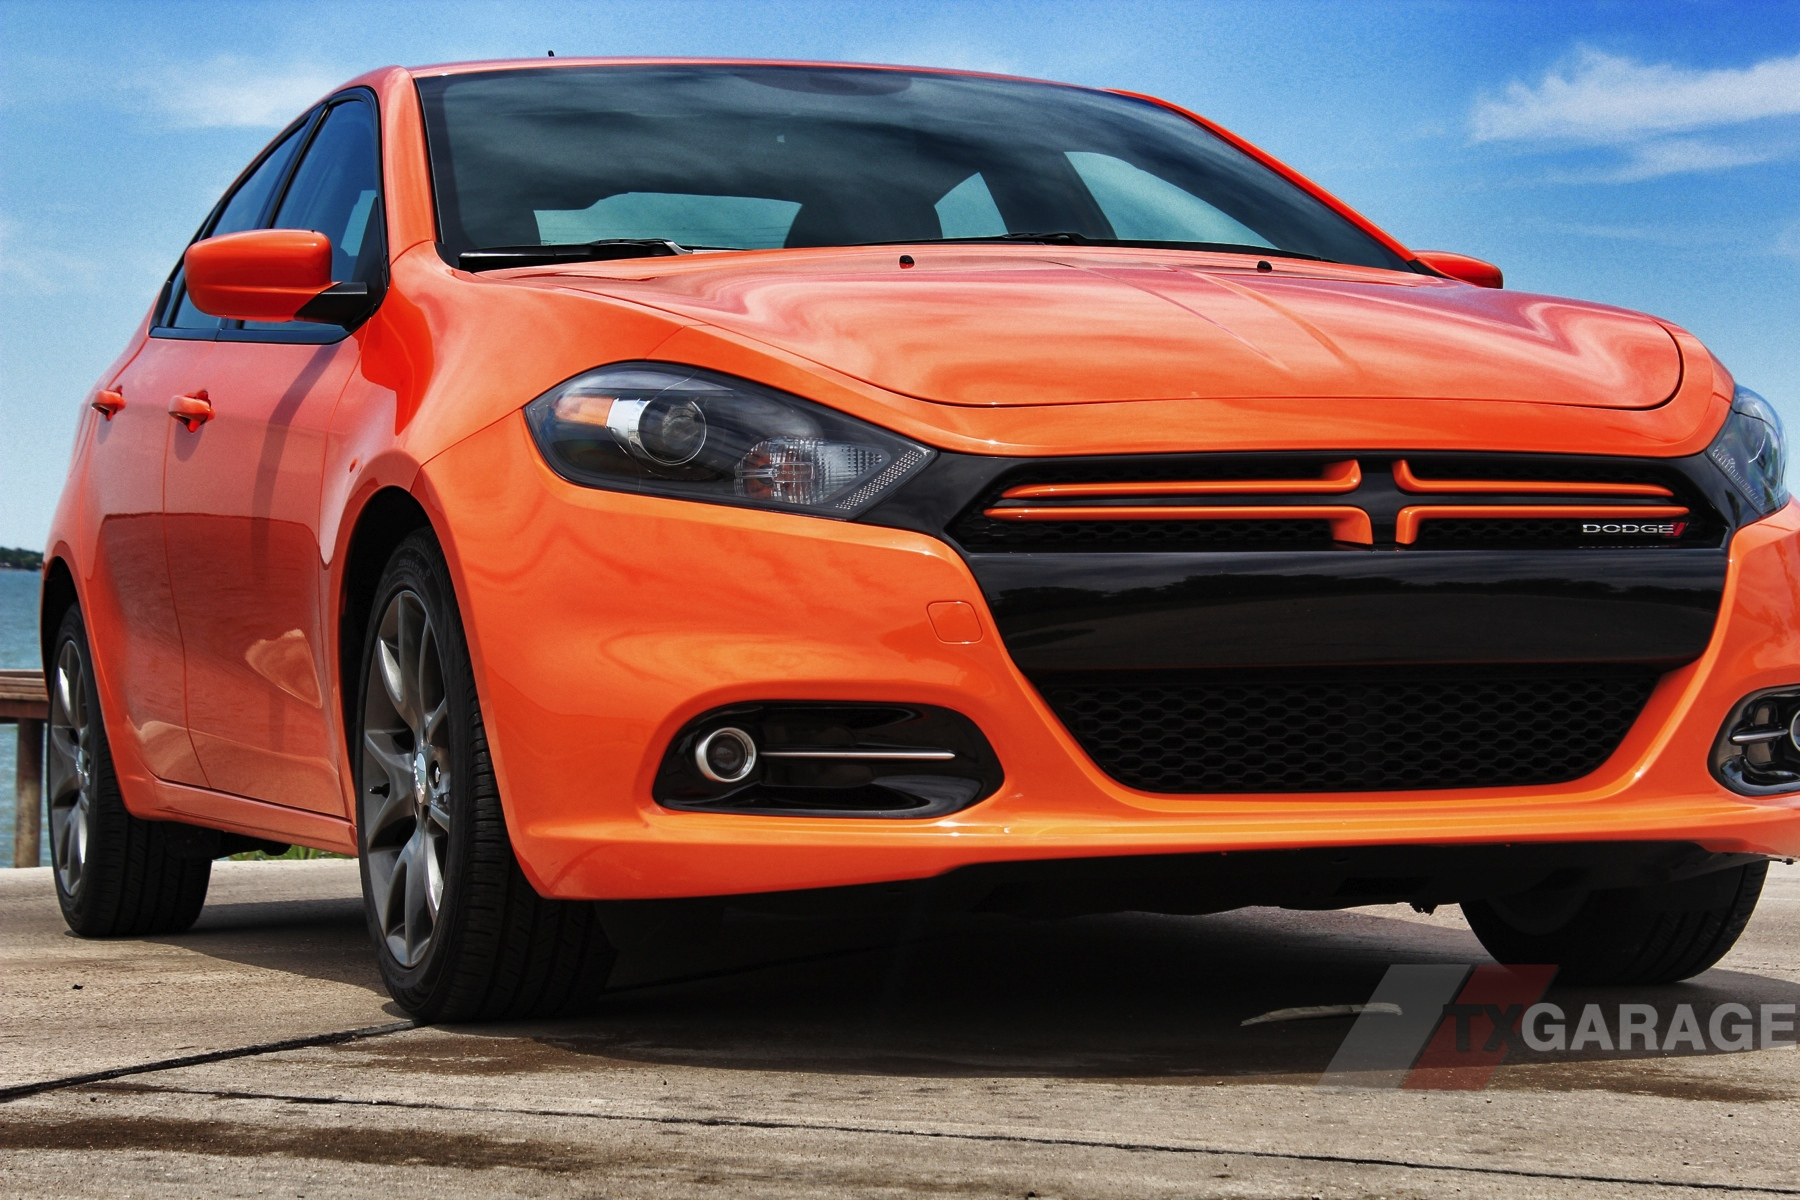 2013 dodge dart rallye 07 txgarage. Cars Review. Best American Auto & Cars Review